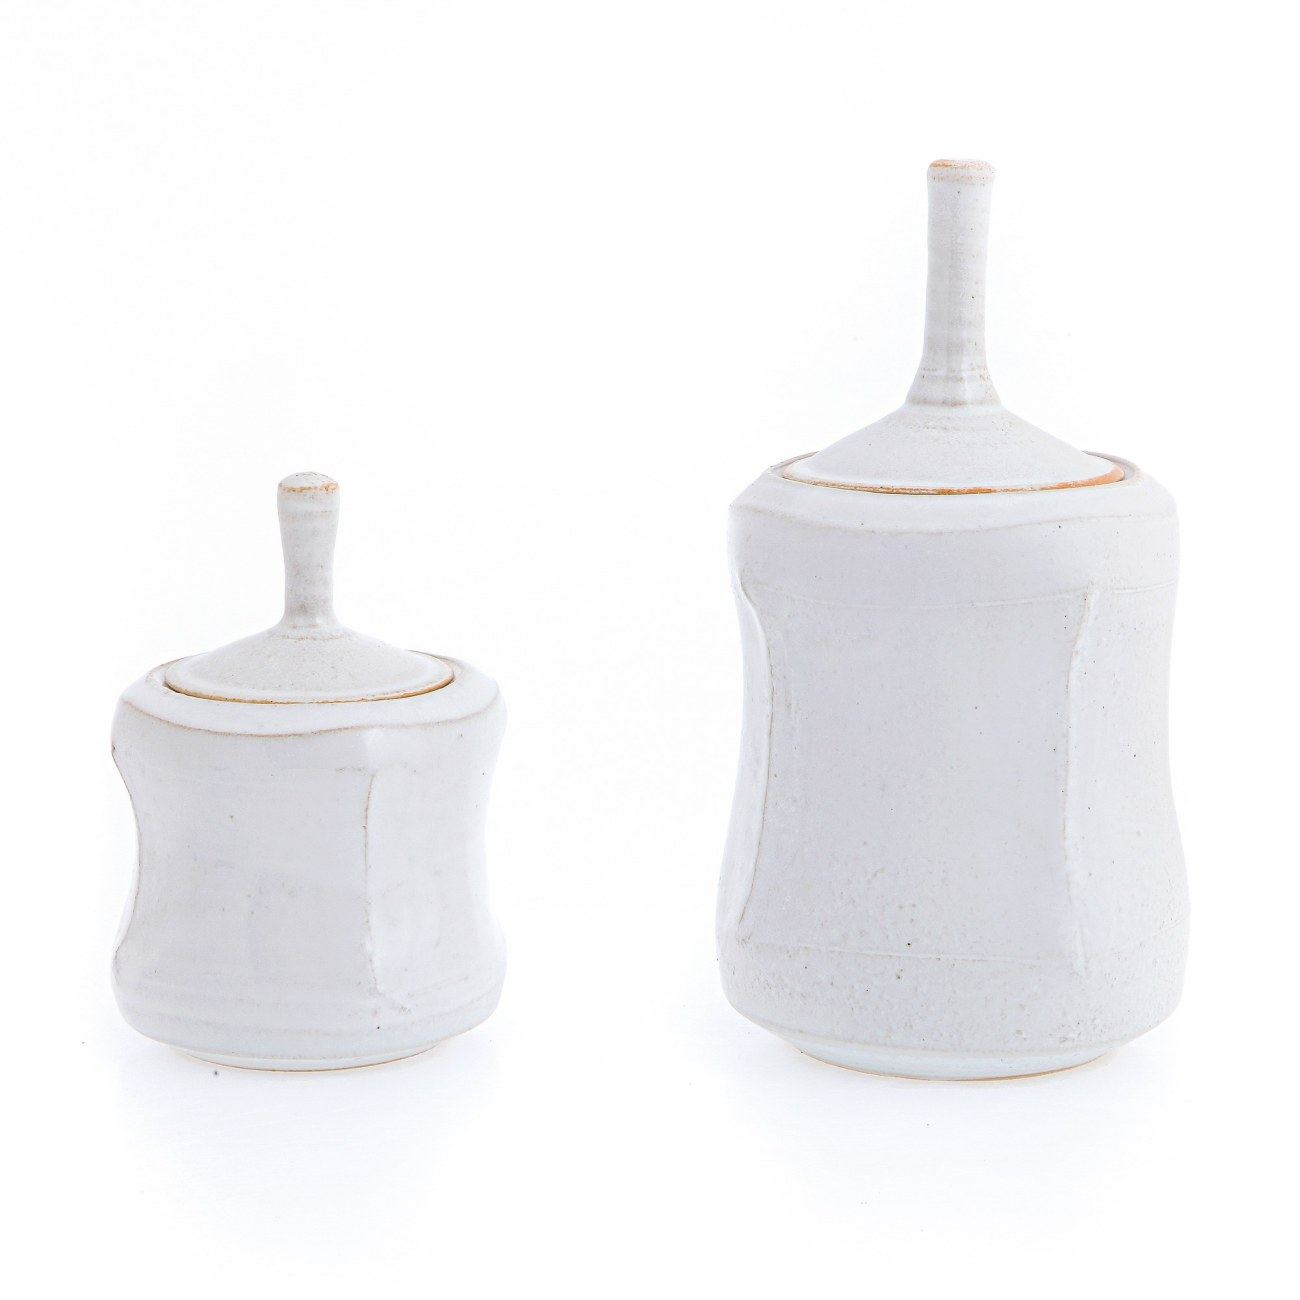 Kitchen Storage Container or Jar Set of 2 Handmade Ceramic White